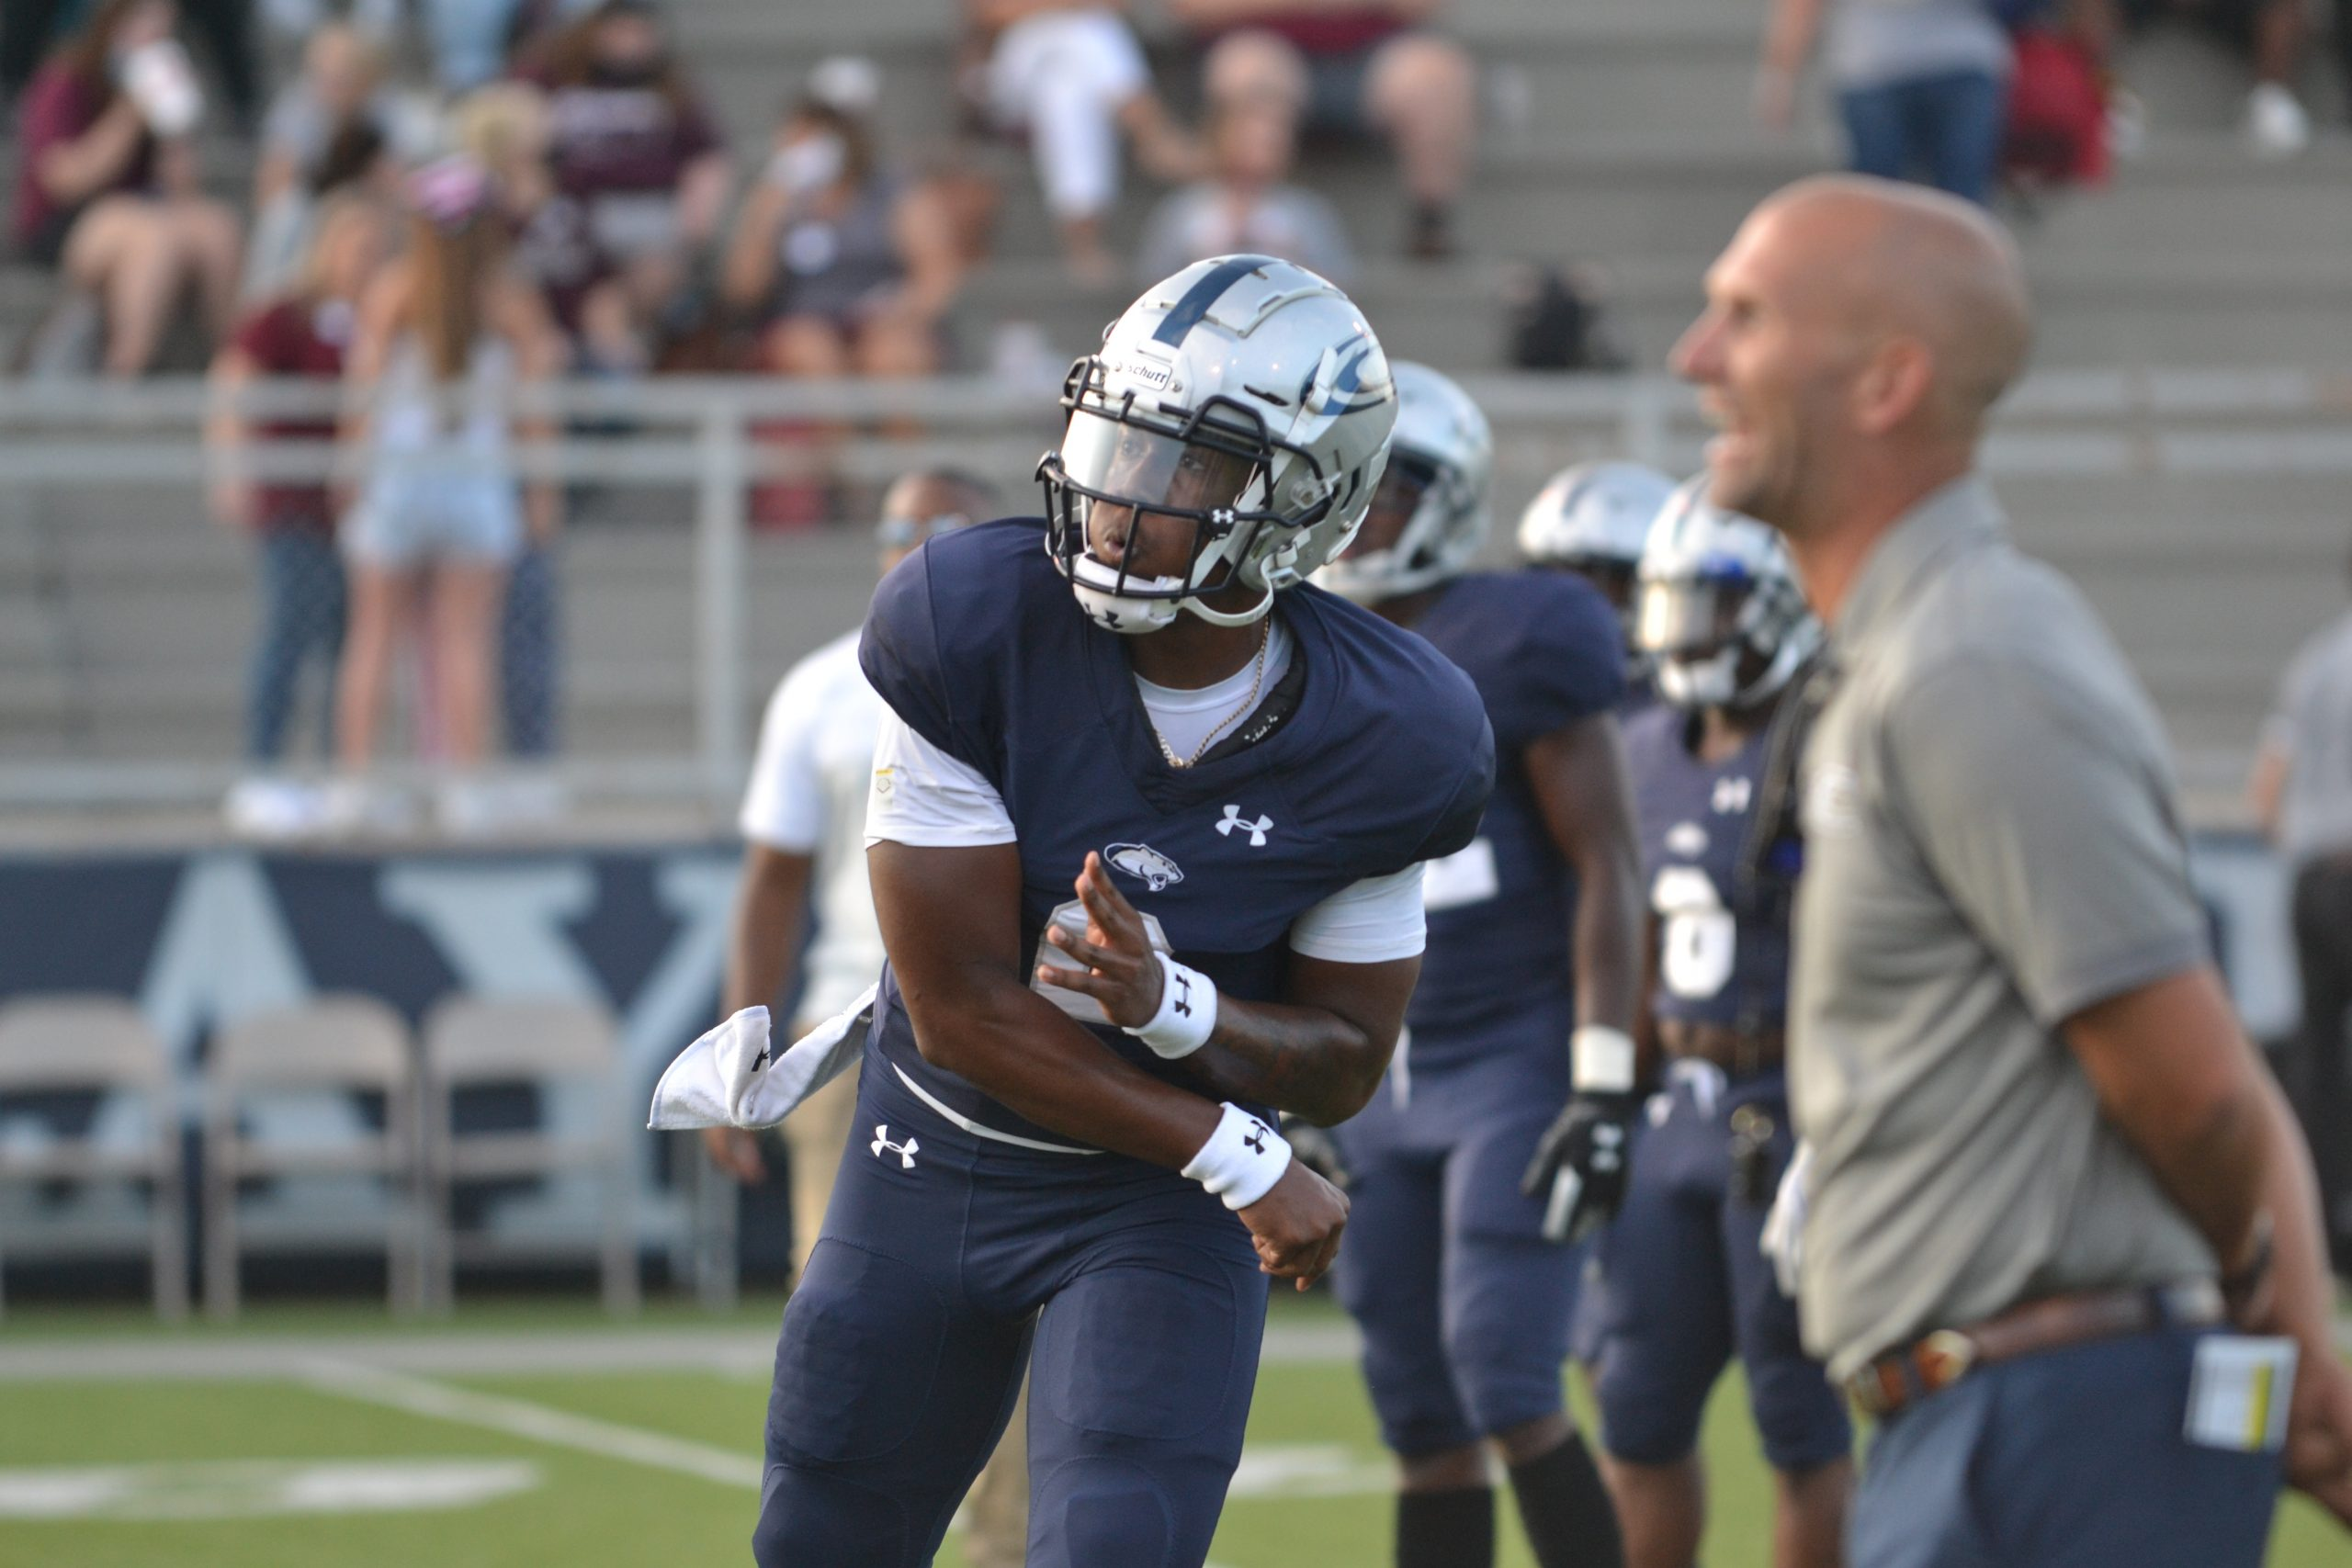 Cougars overcome mistakes to beat minor, 38-33